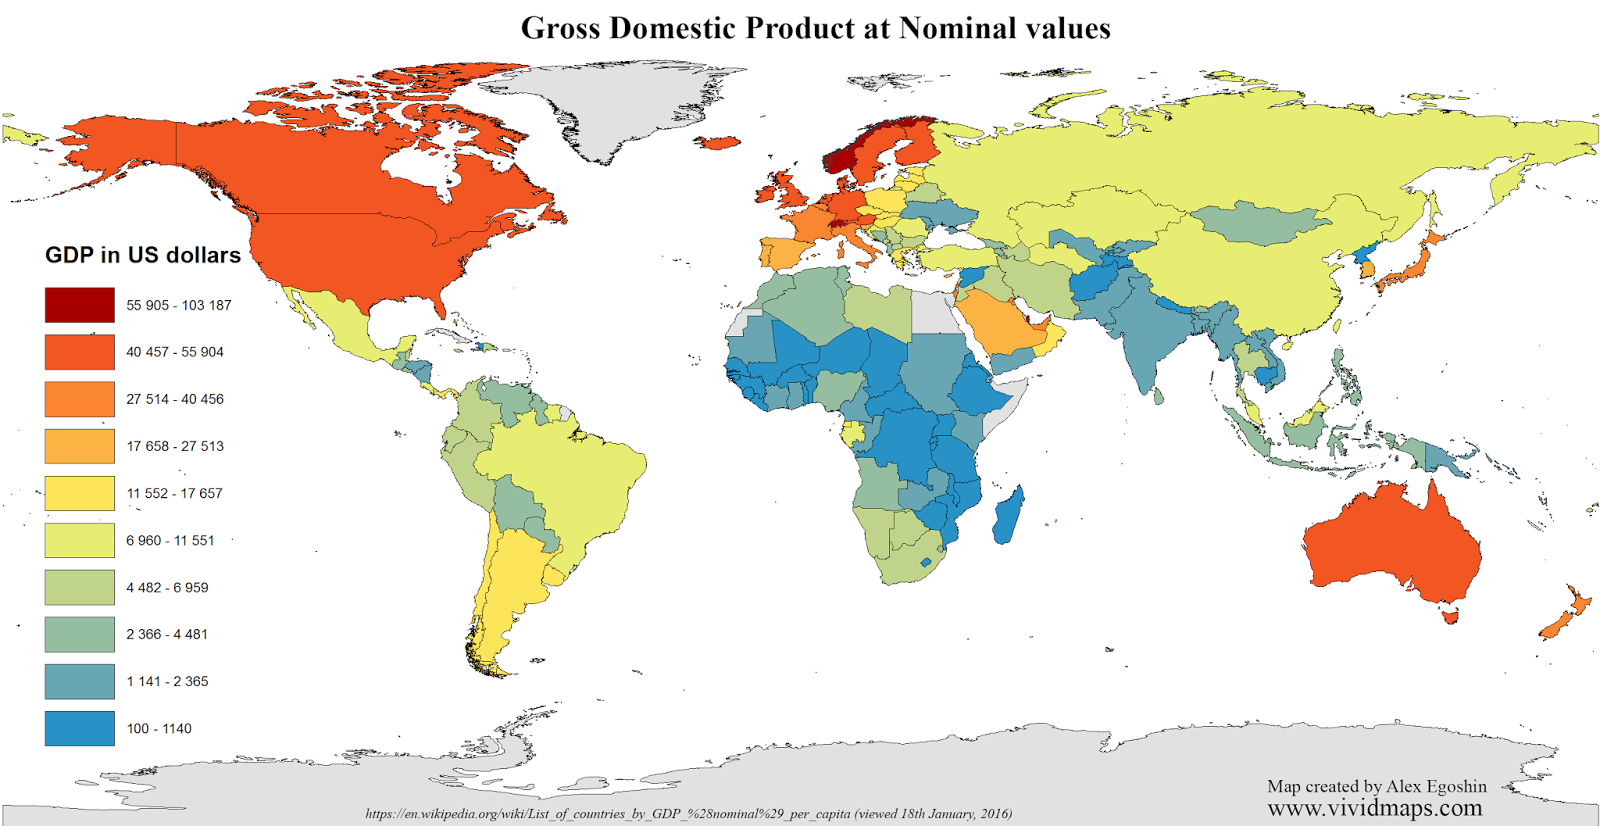 Gross Domestic Product at Nominal values